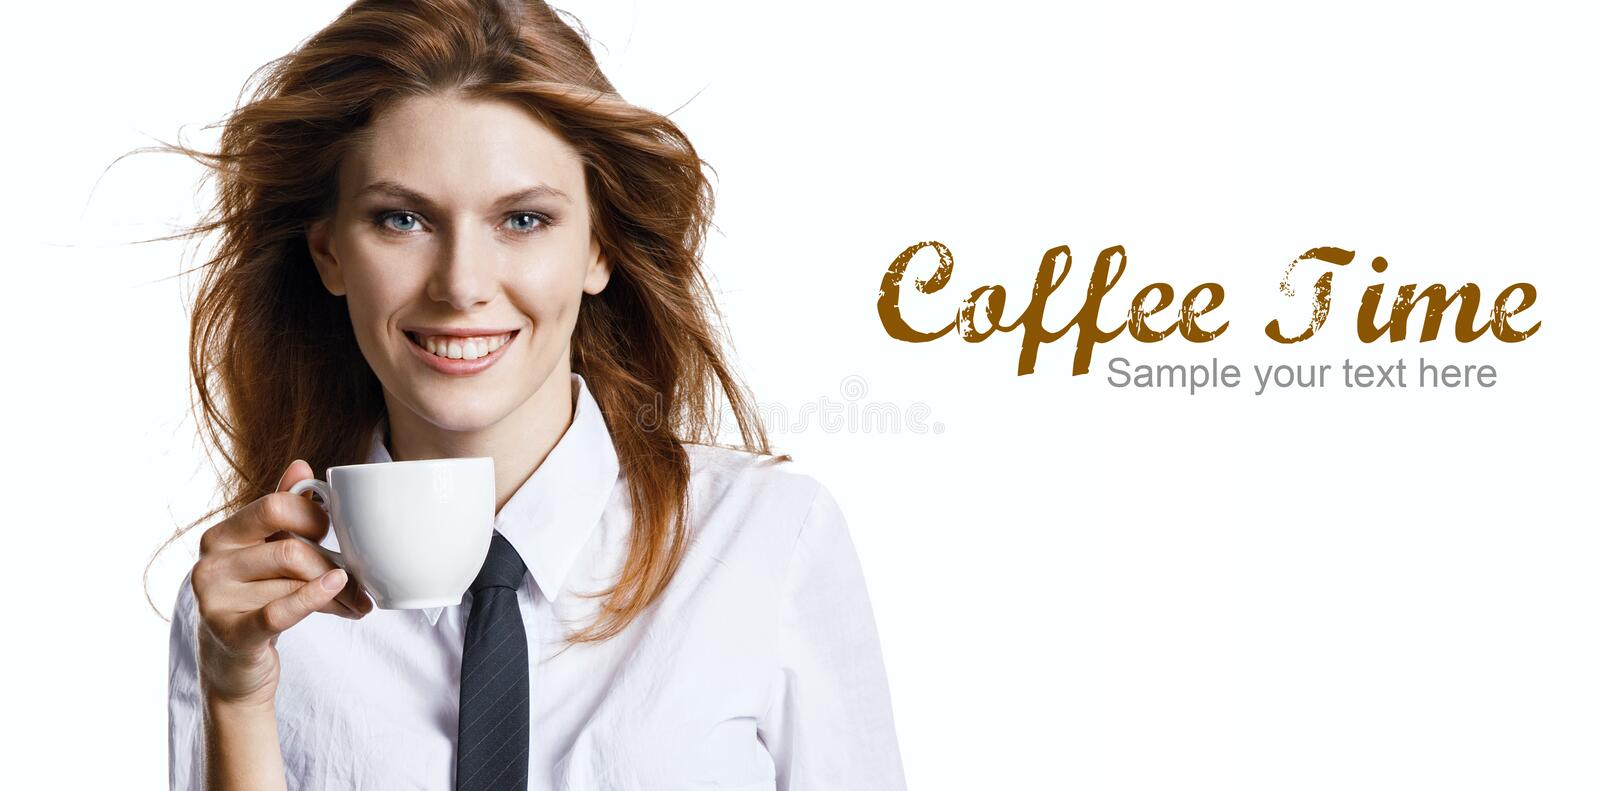 Pretty smiling woman have a coffee break. Photography of pretty businesswoman holding porcelain cup with coffee - isolated over white background with copyspace royalty free stock image